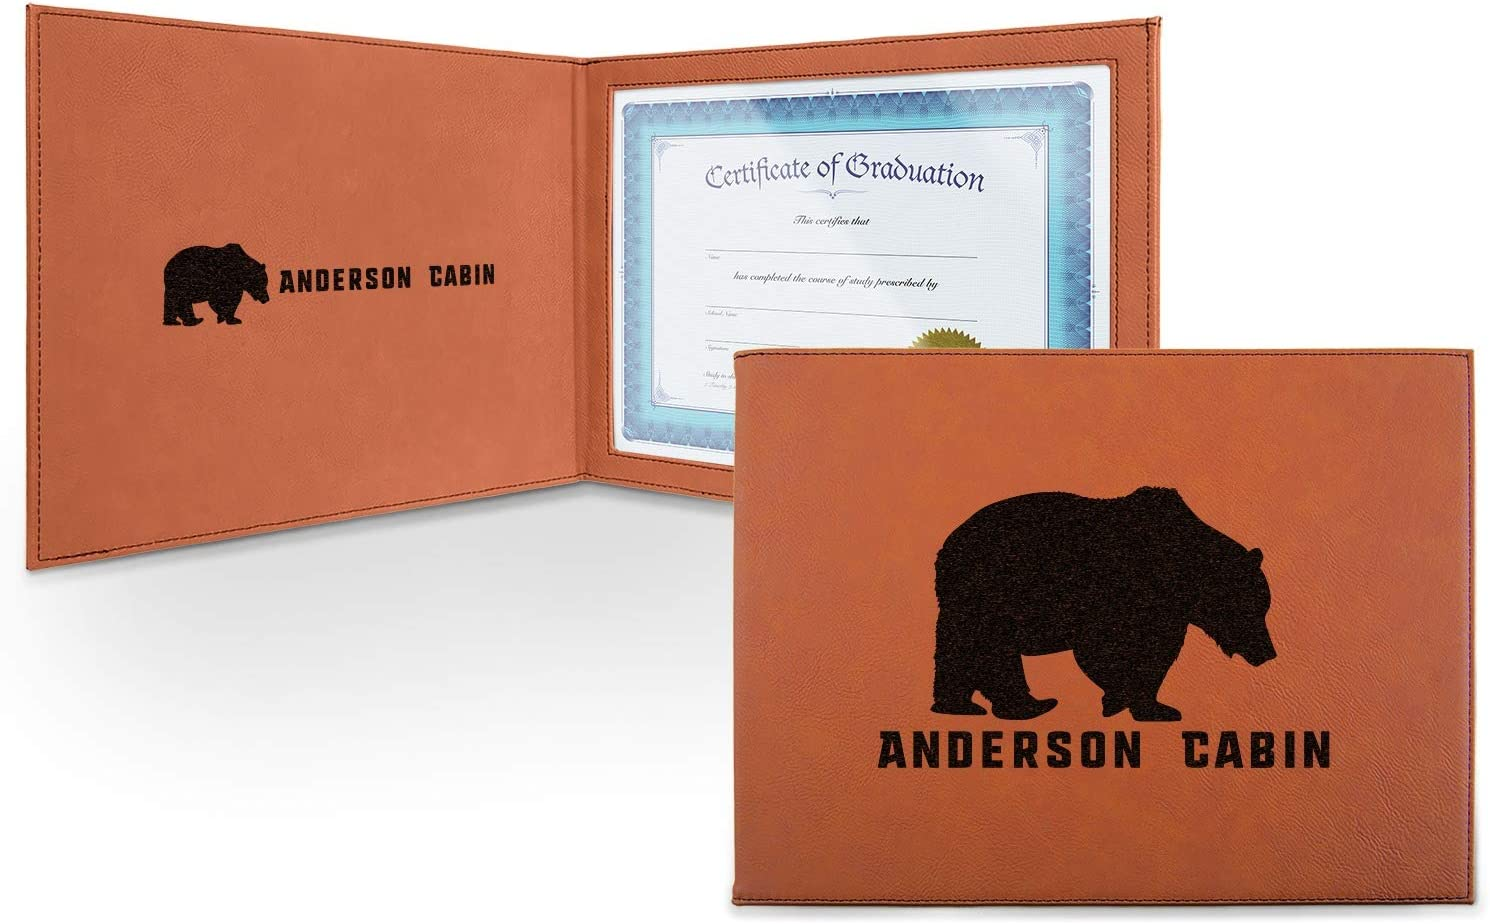 Cabin Leatherette Certificate Holder - Excellence Persona Inside and Front Max 53% OFF